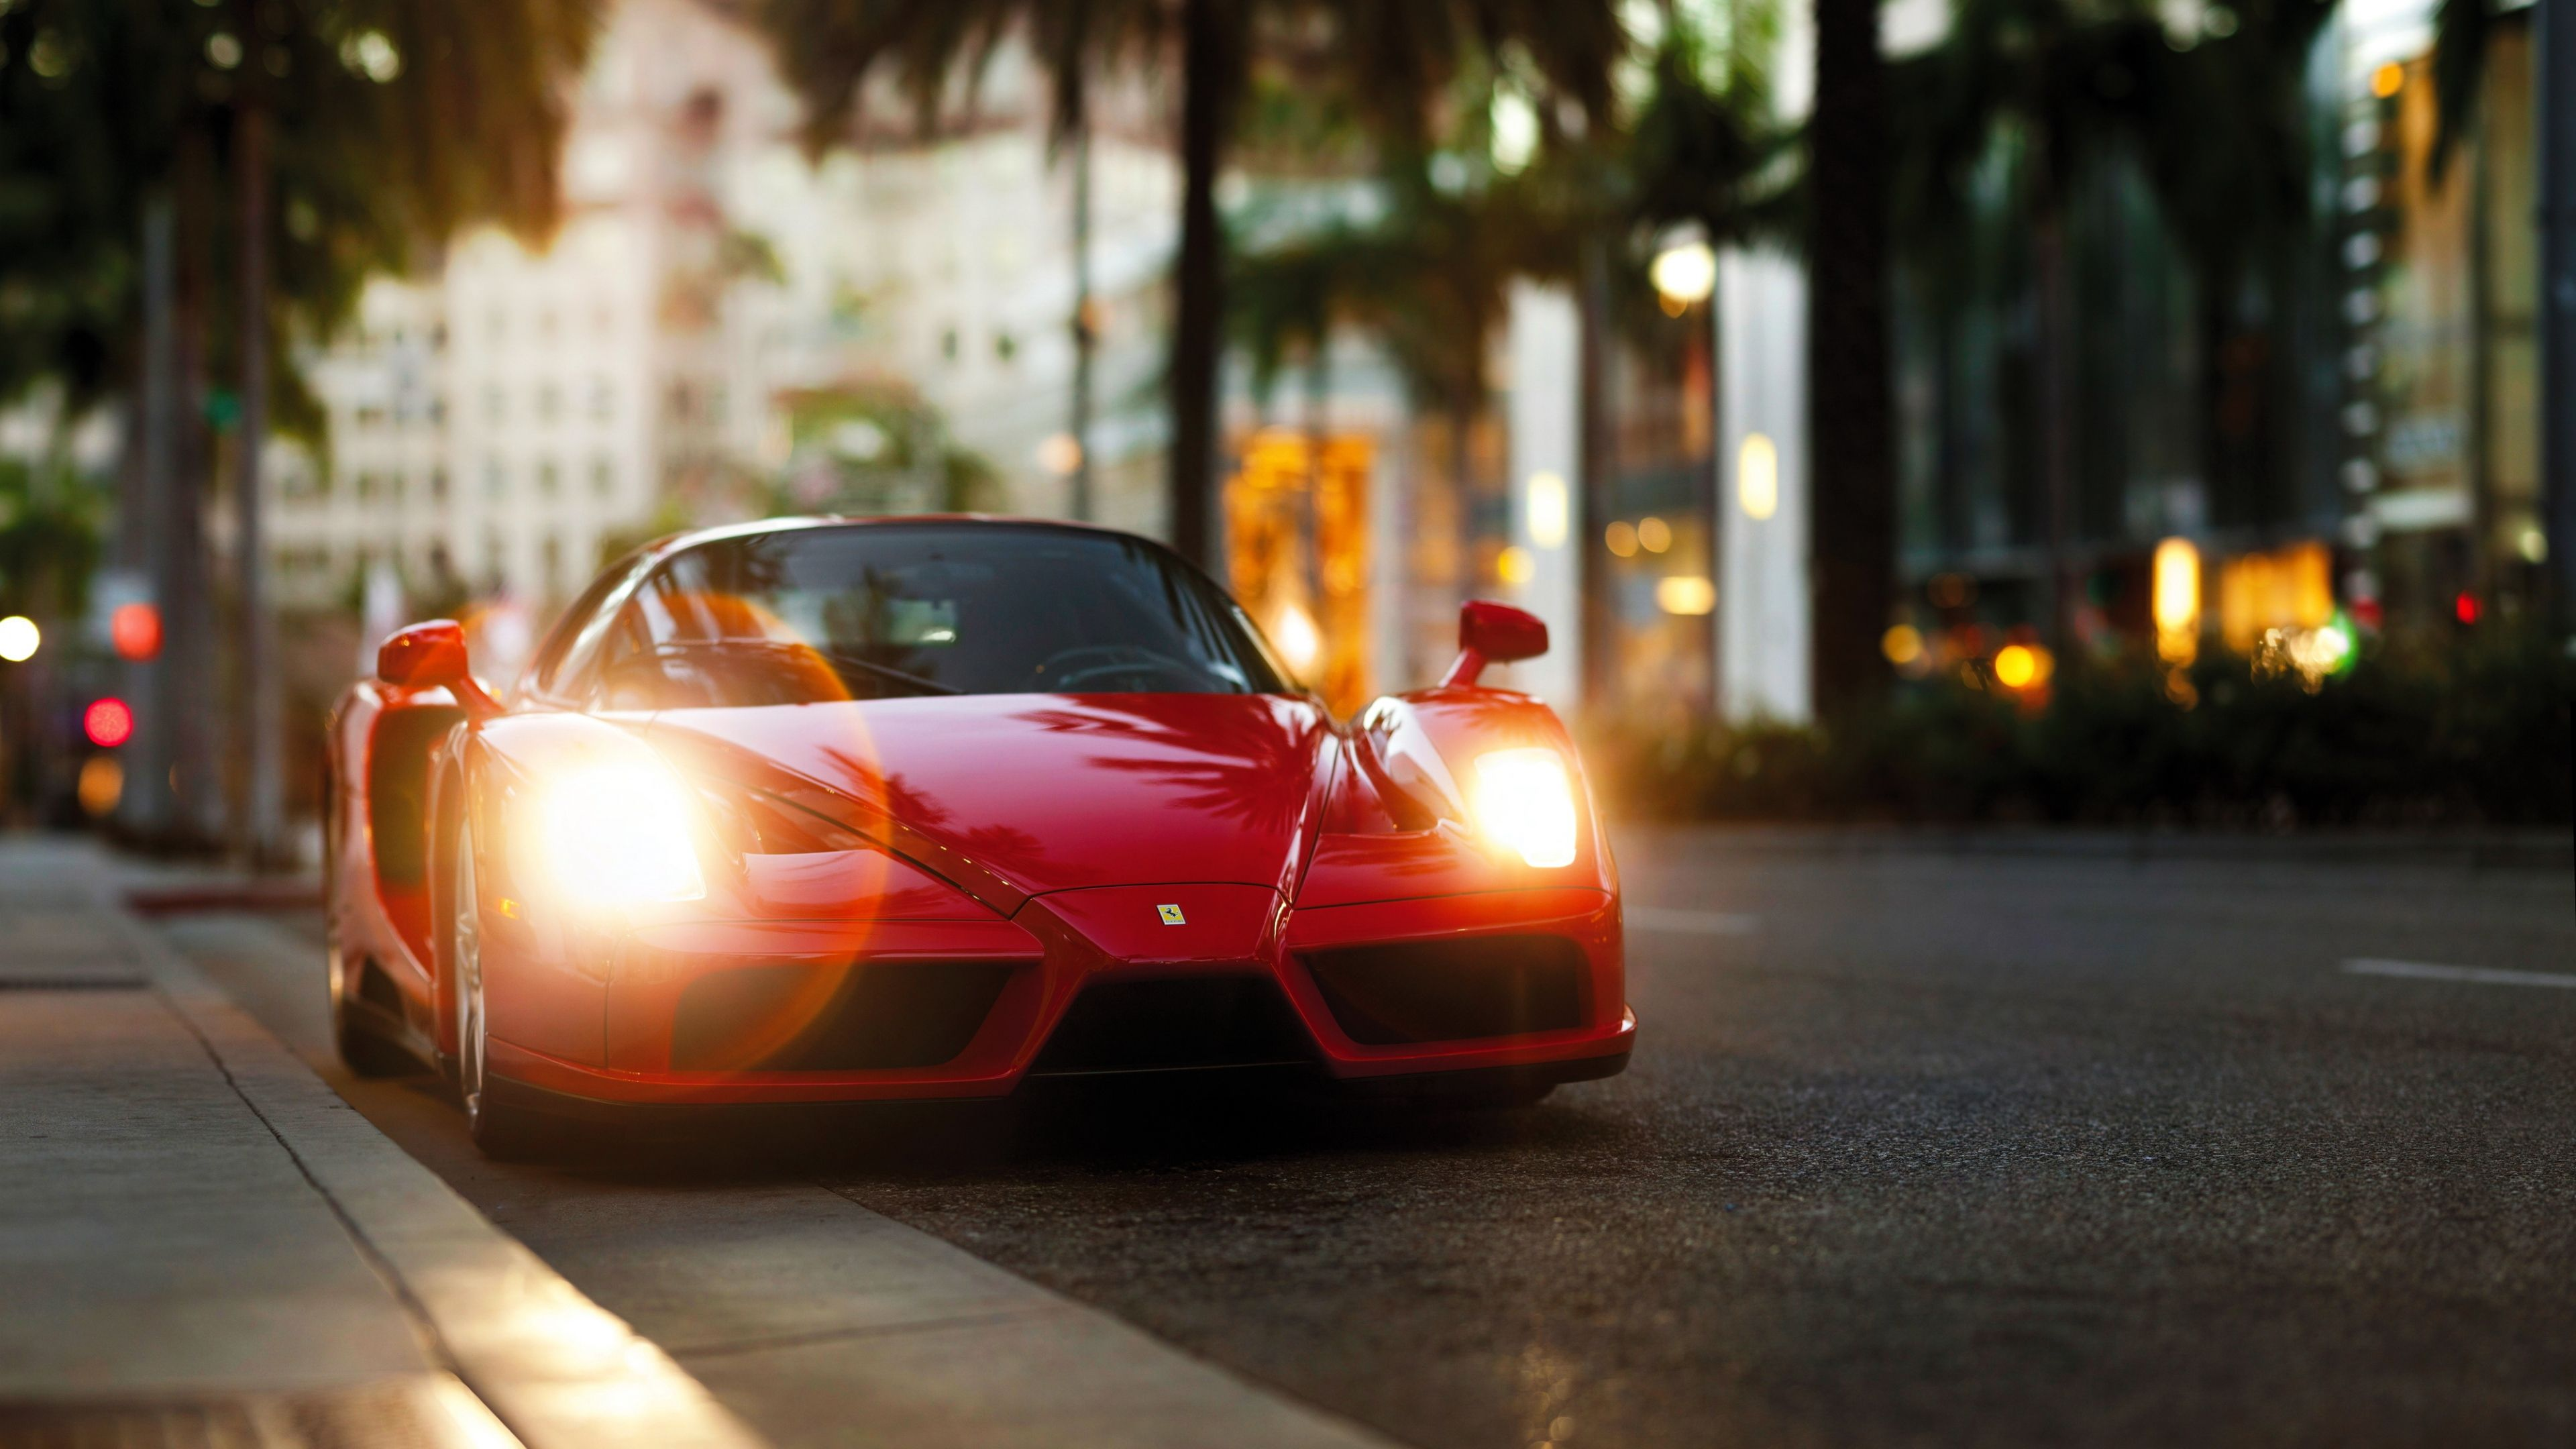 3840x2160 Wallpaper ferrari enzo, red, side view